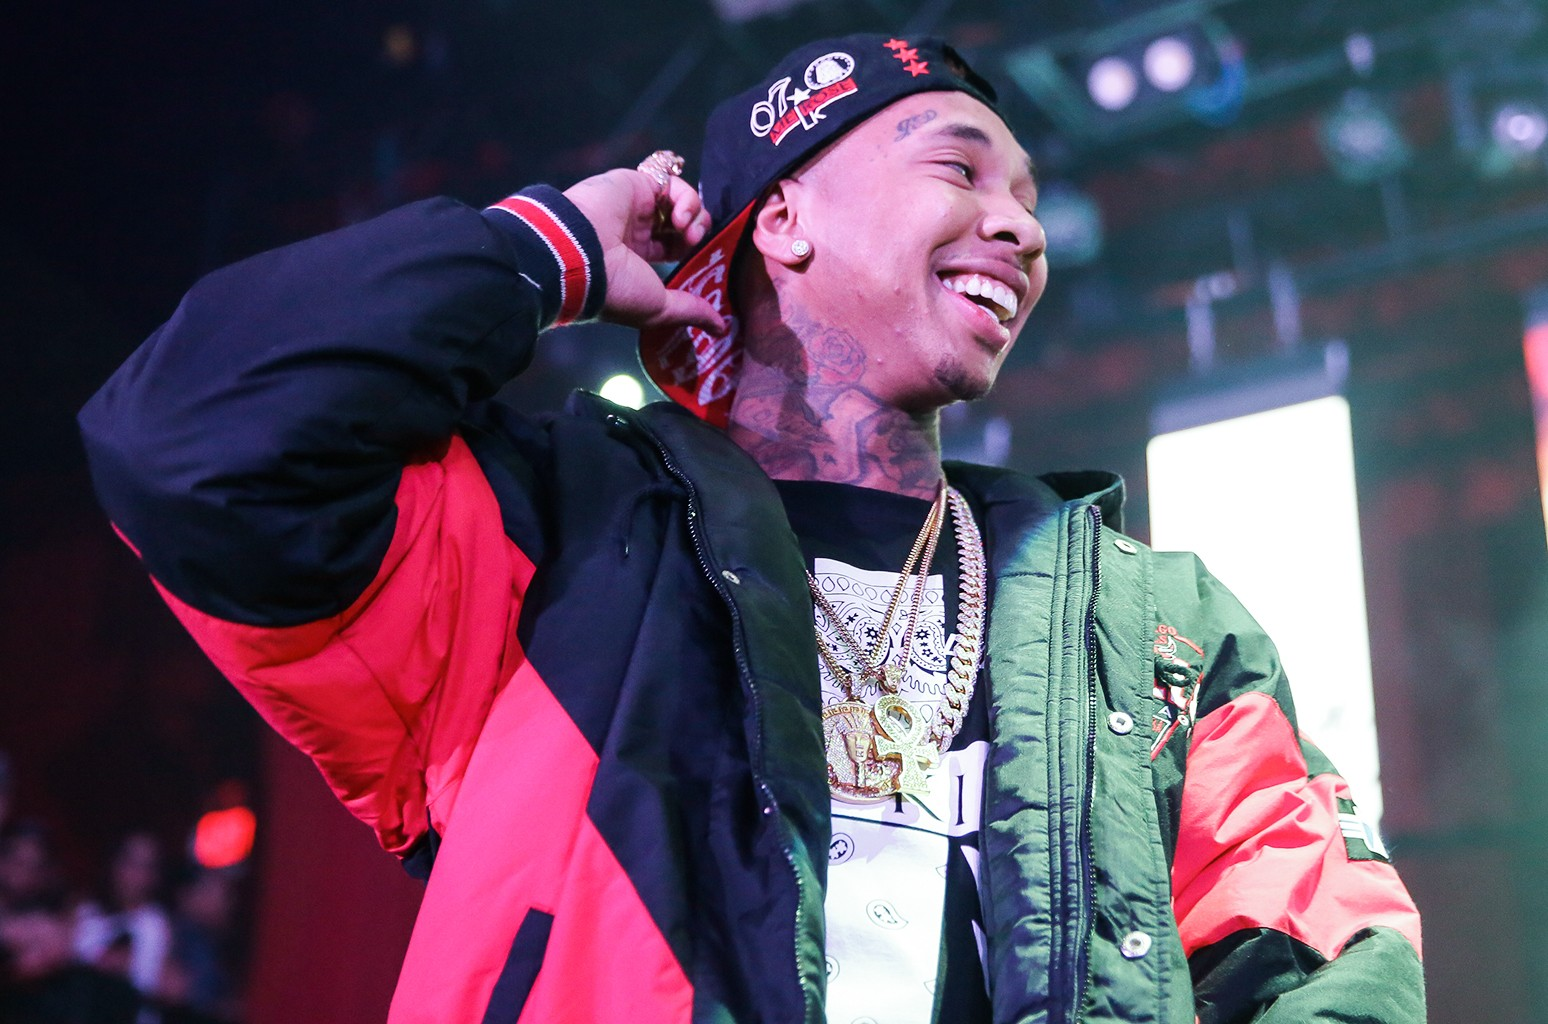 Tyga performs on Jan. 18, 2015 in Los Angeles.